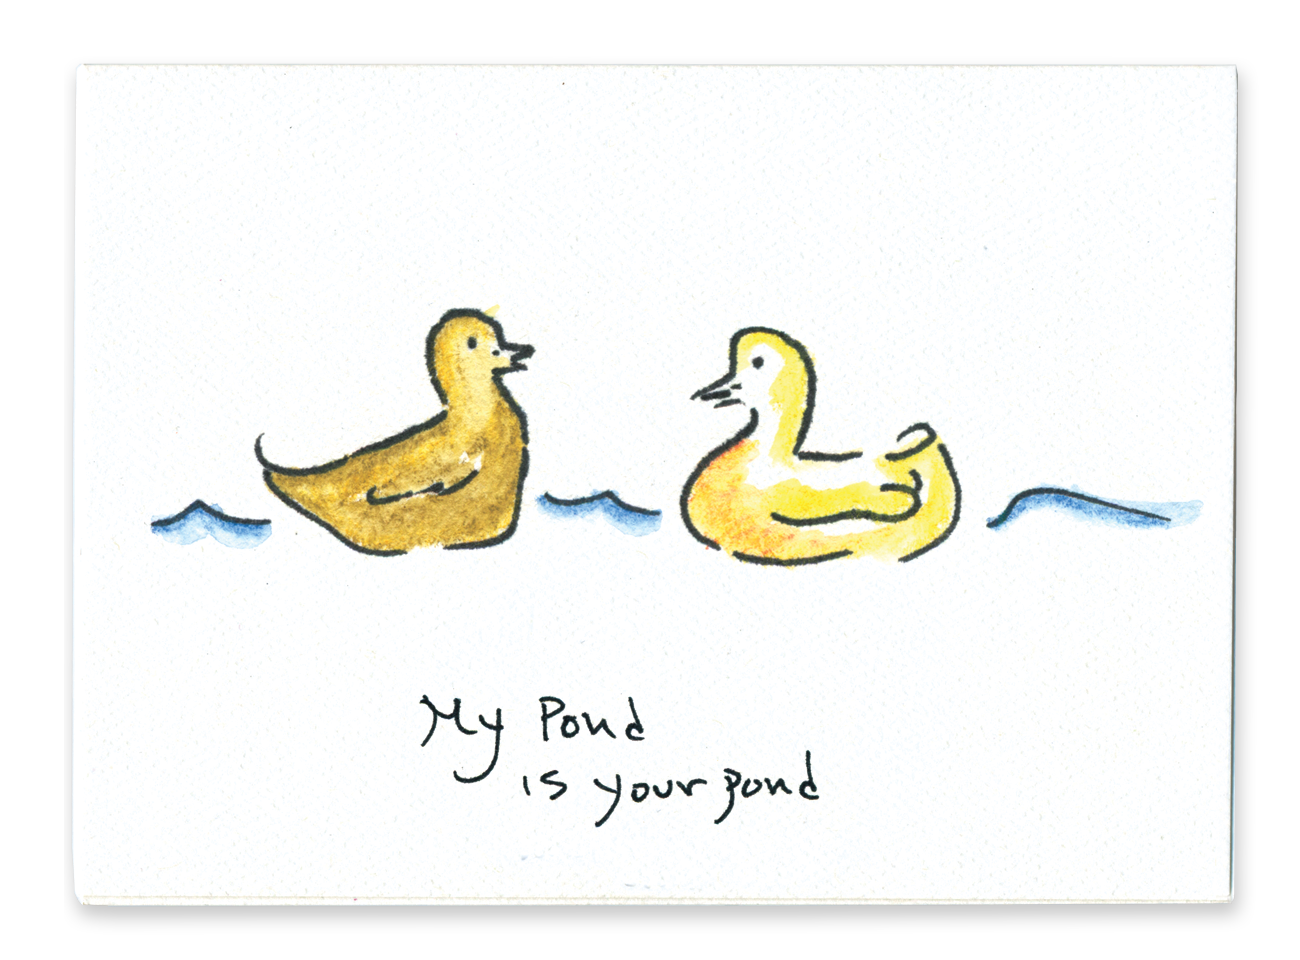 My Pond is Your Pond